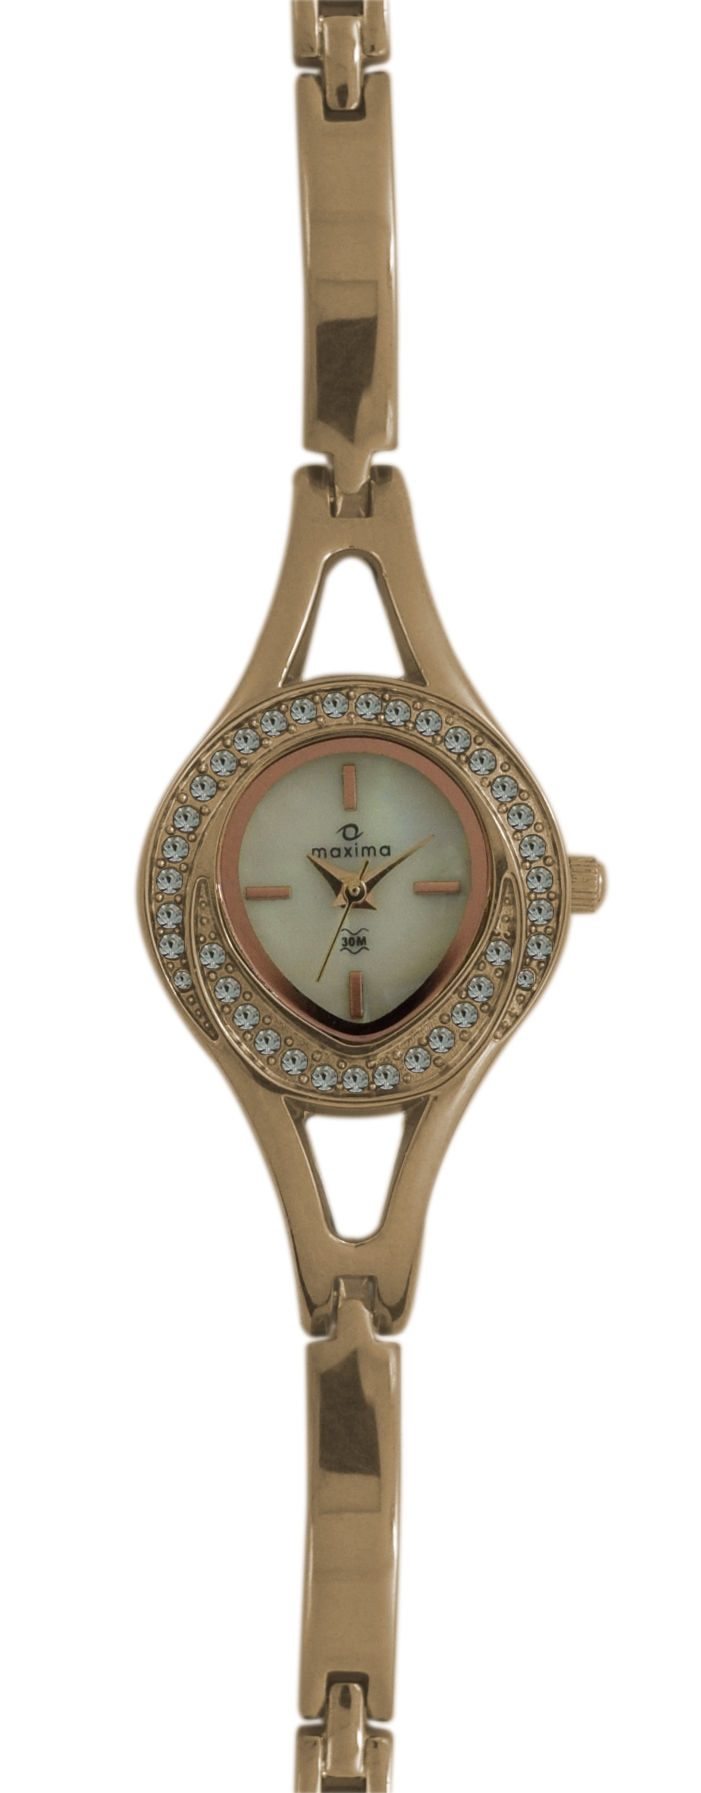 maxima rose gold analogue watches 32280bmlr for women prices. Black Bedroom Furniture Sets. Home Design Ideas